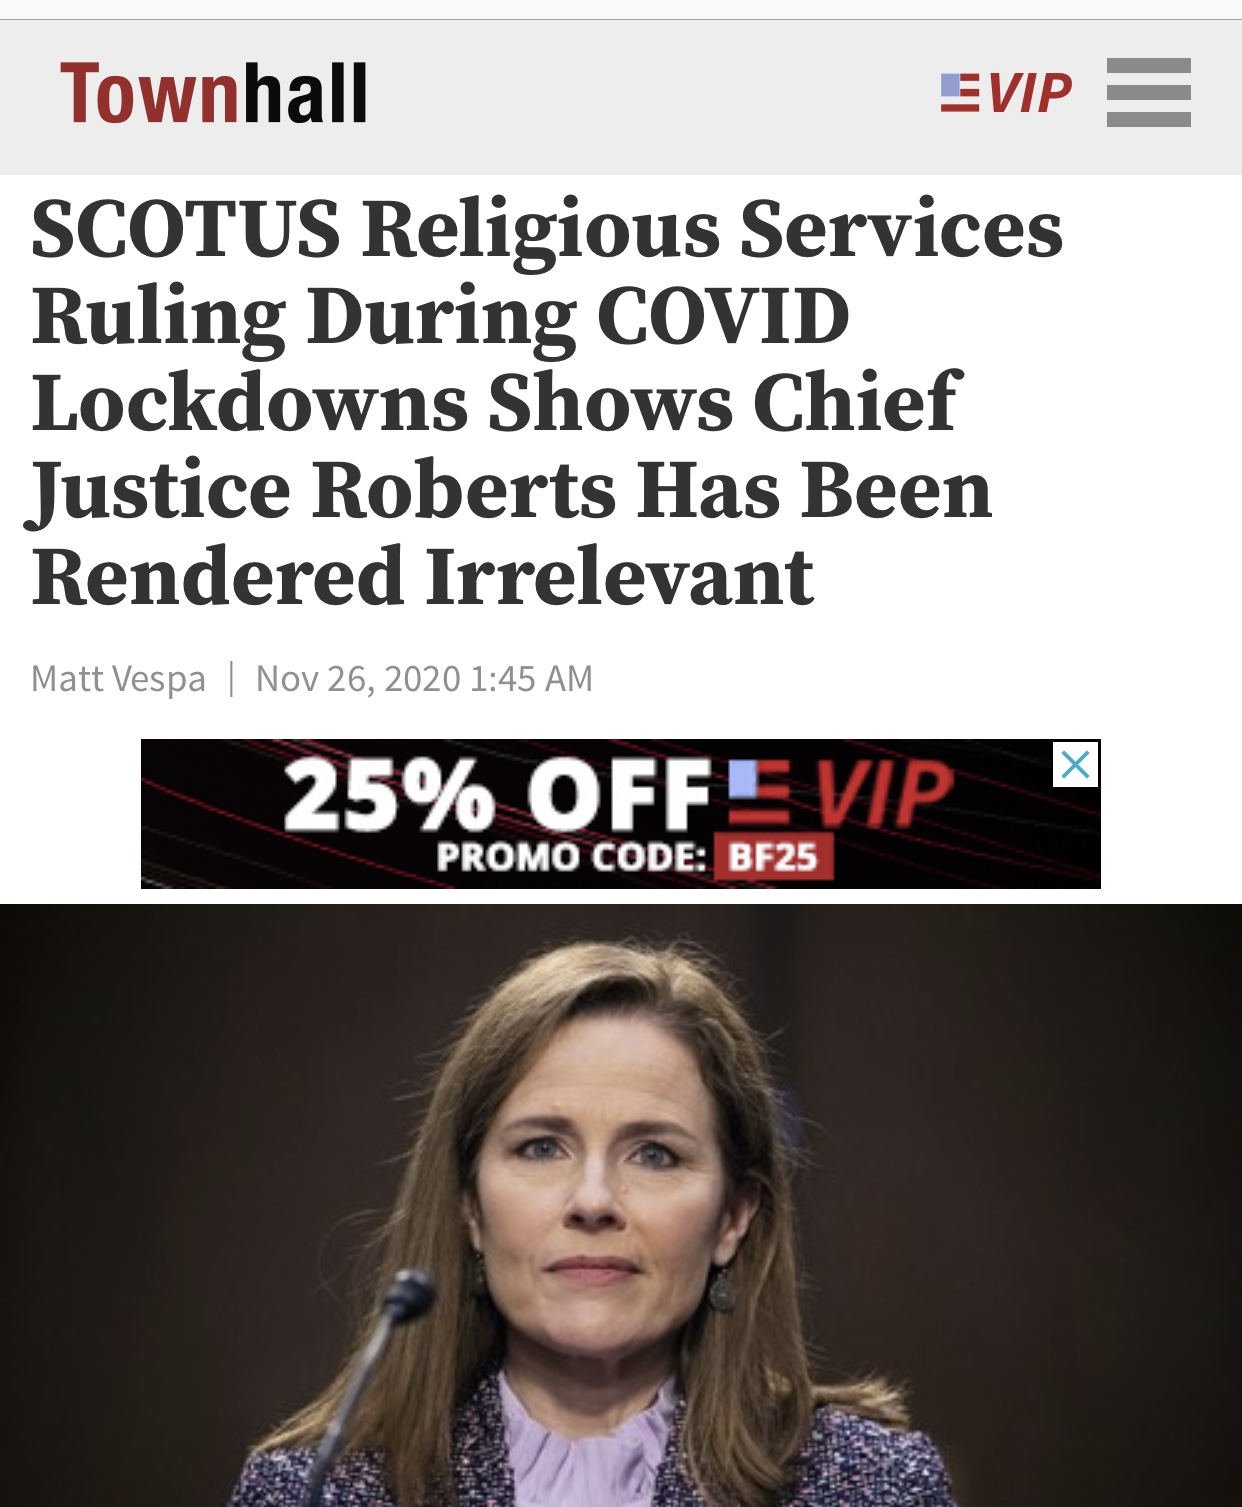 SCOTUS Religious Services Ruling During COVID Lockdowns Shows Chief Justice Roberts Has Been Rendered Irrelevant